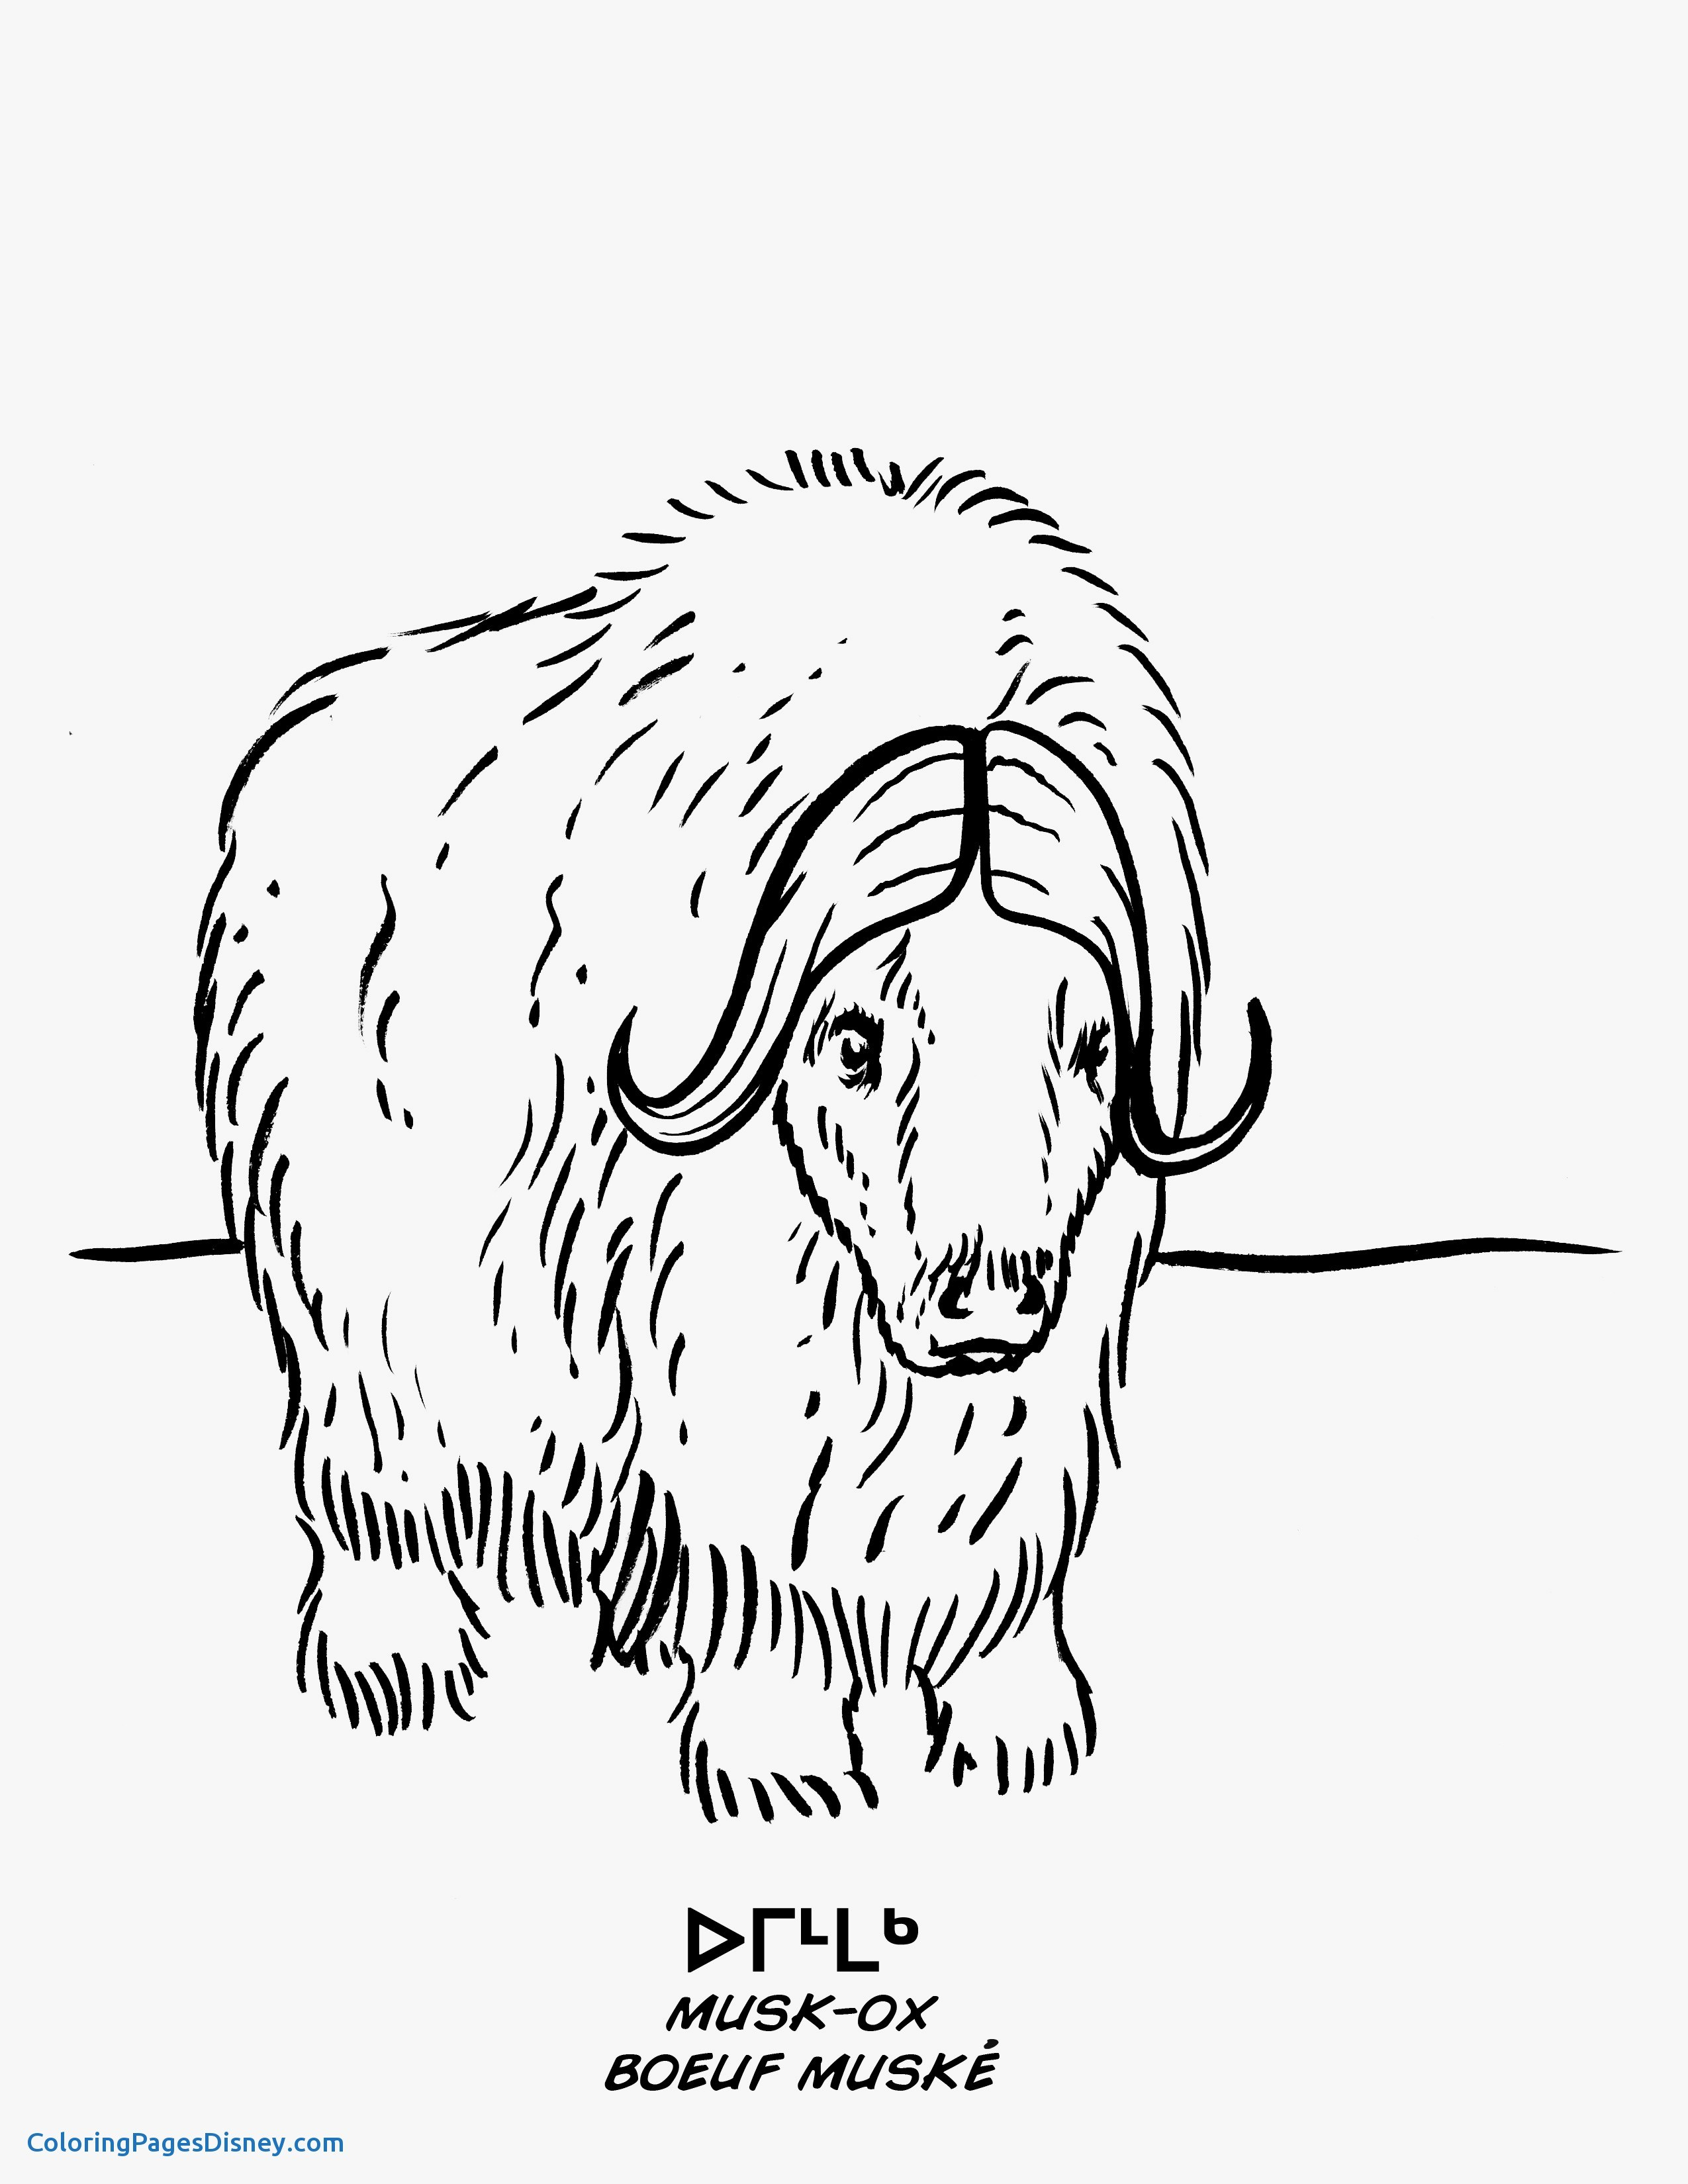 musk ox coloring page musk ox coloring nature coloring musk page ox